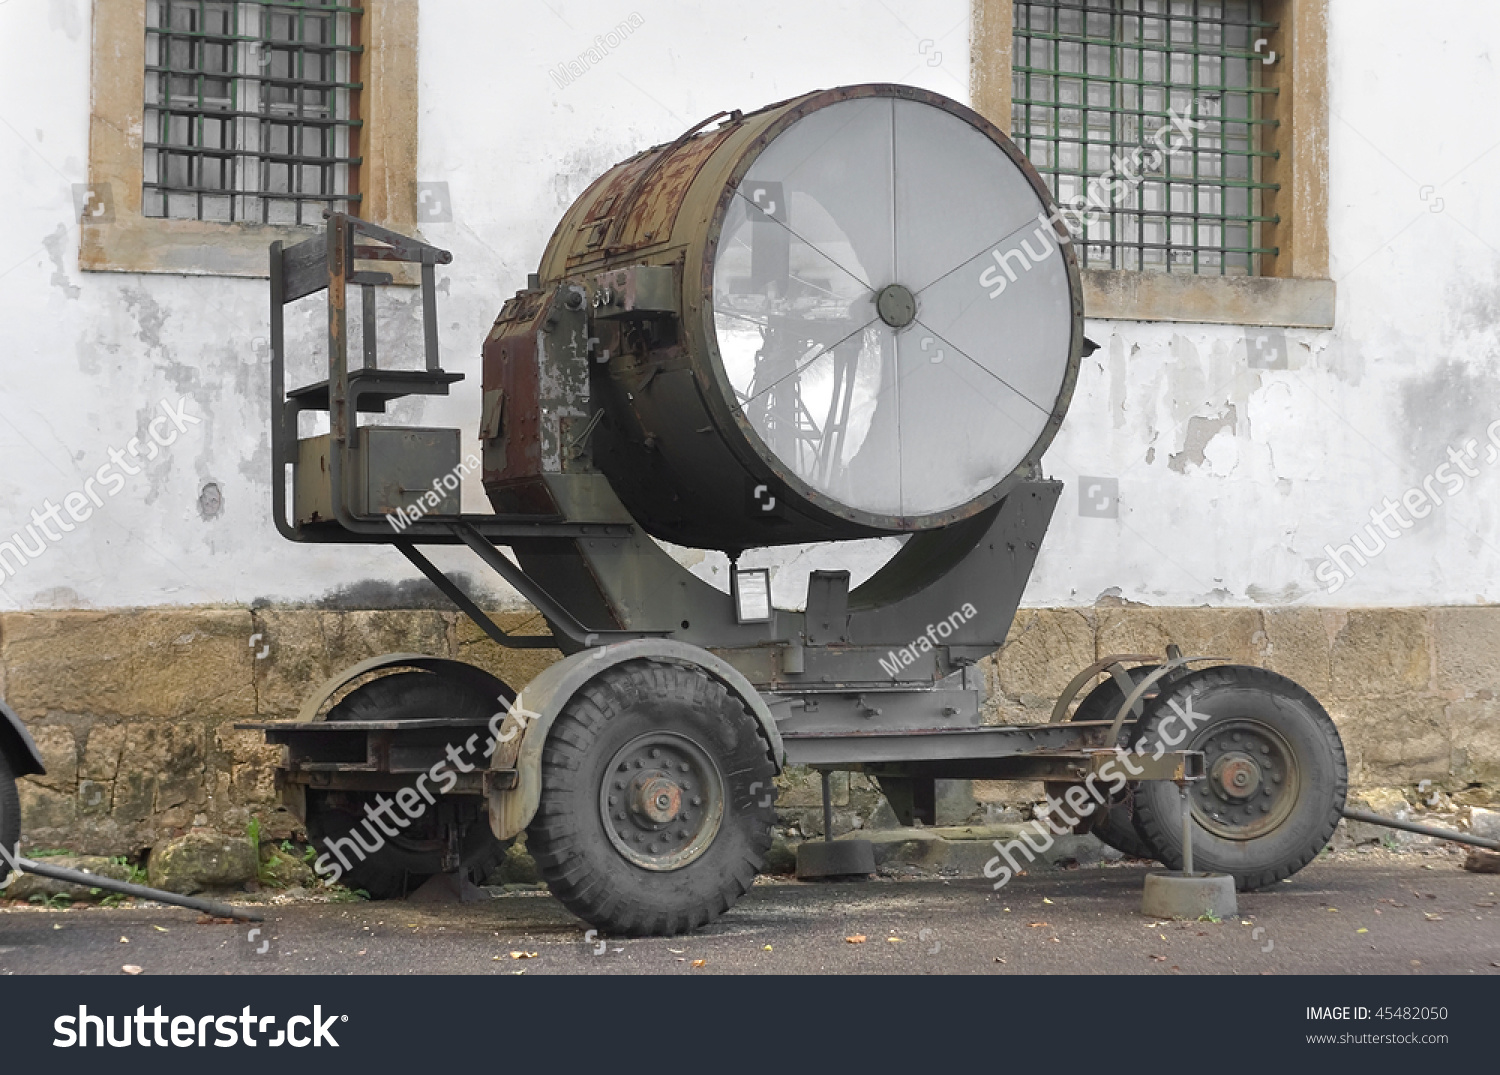 Old World War 2 Carbon Arc Stock Photo (Royalty Free) 45482050 ... for Carbon Arc Searchlight  588gtk